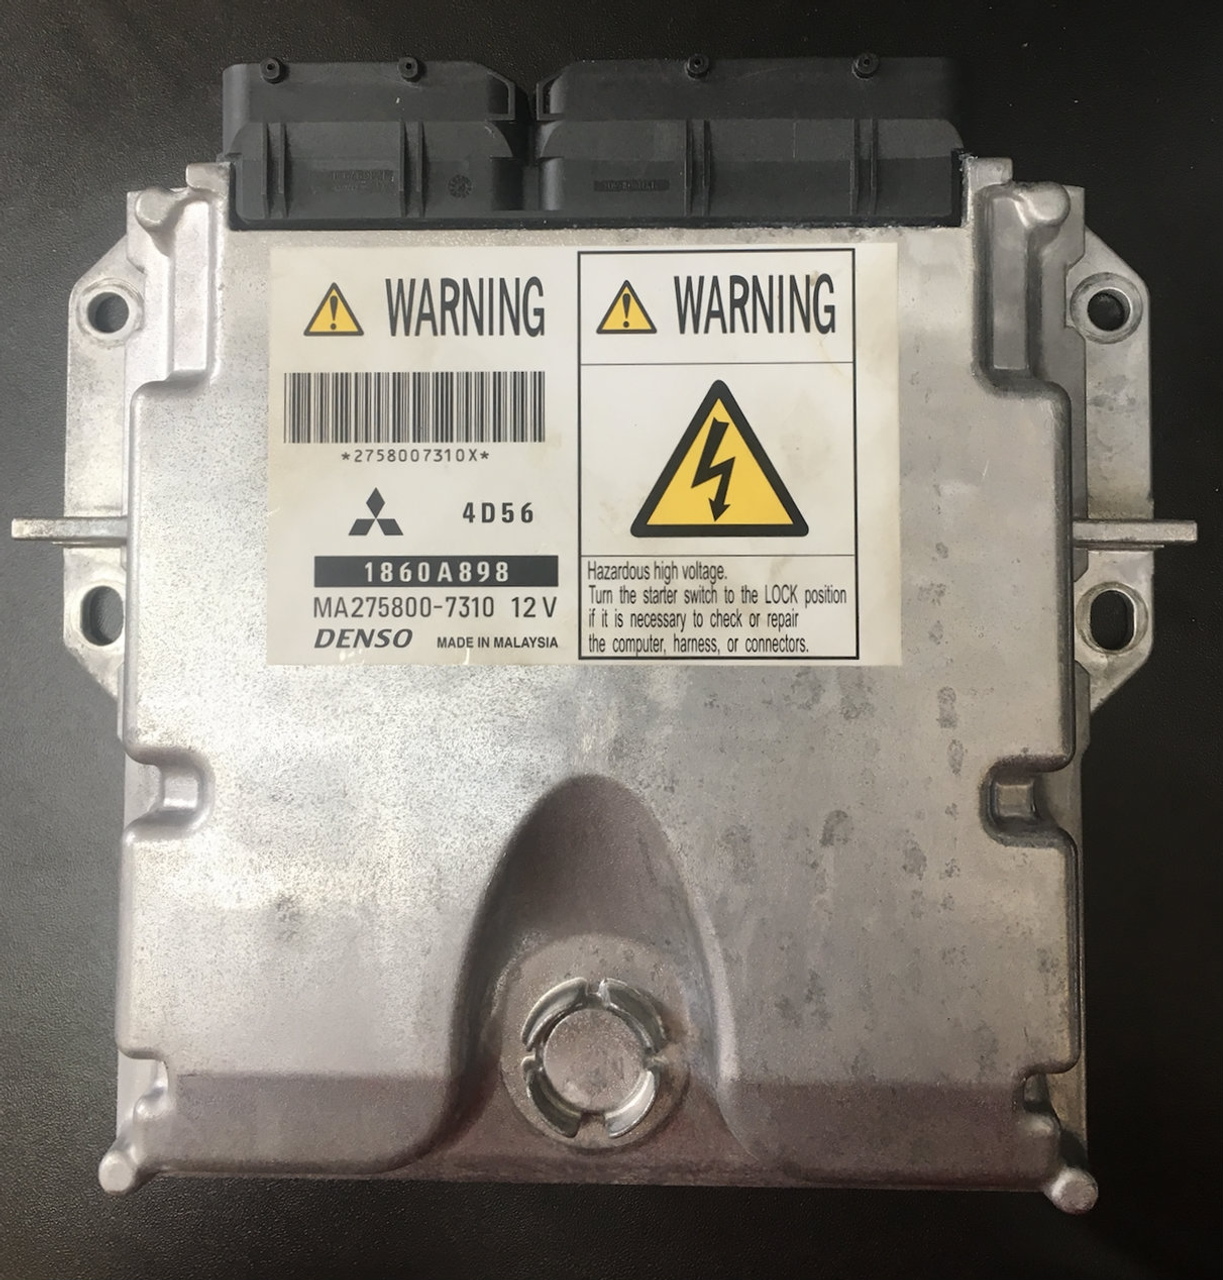 Plug & Play Denso Engine ECU, Mitsubishi L200, MA275800-7310, 1860A898, 4D56